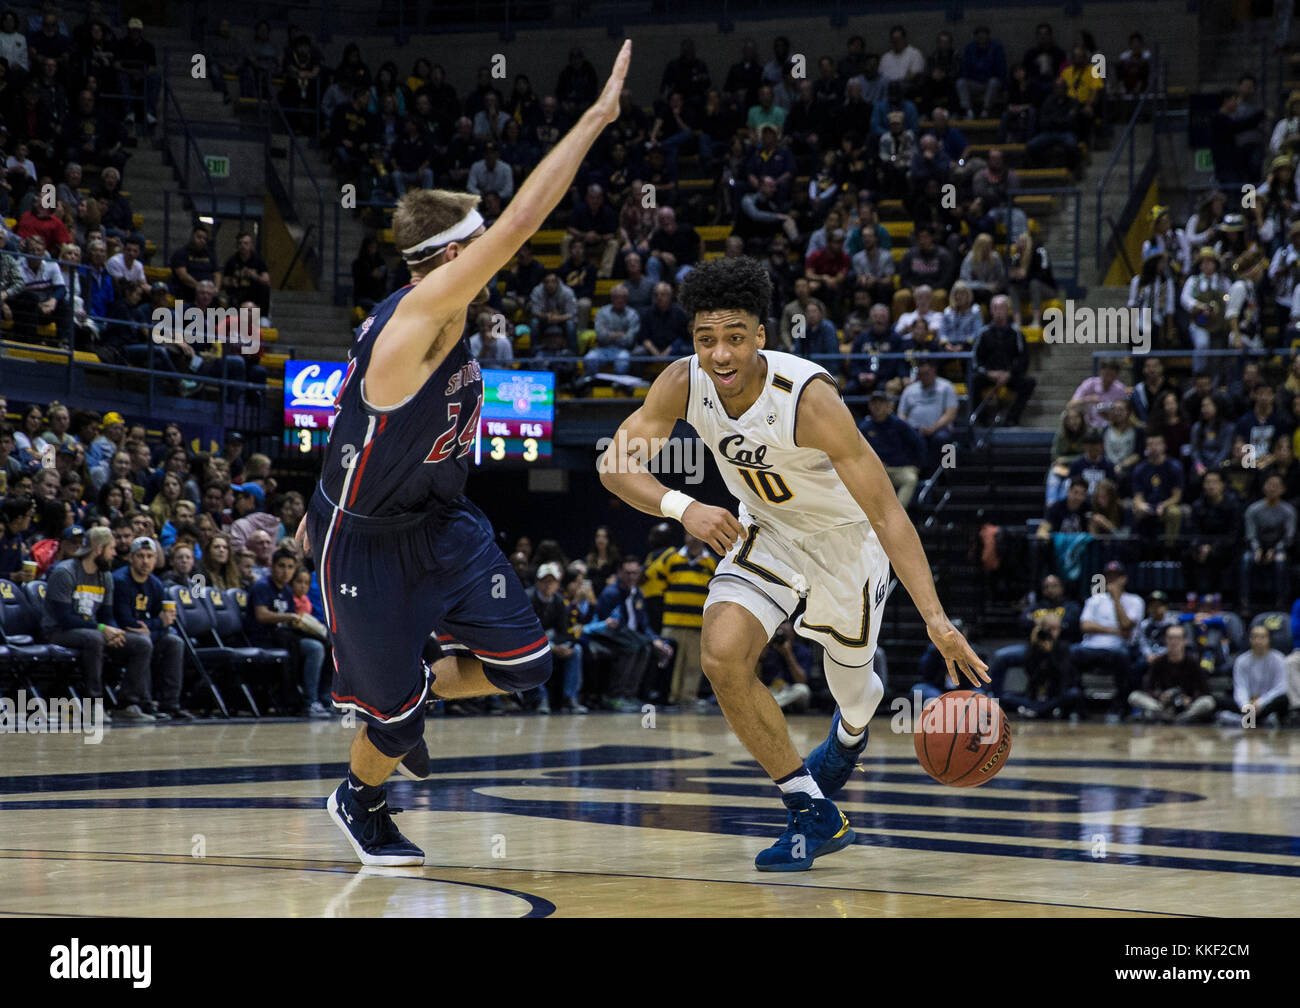 Dec 02 11 2017 Berkeley, CA, U.S.A. California forward Justice Sueing (10) scored 7 points and 2 assist brings the - Stock Image